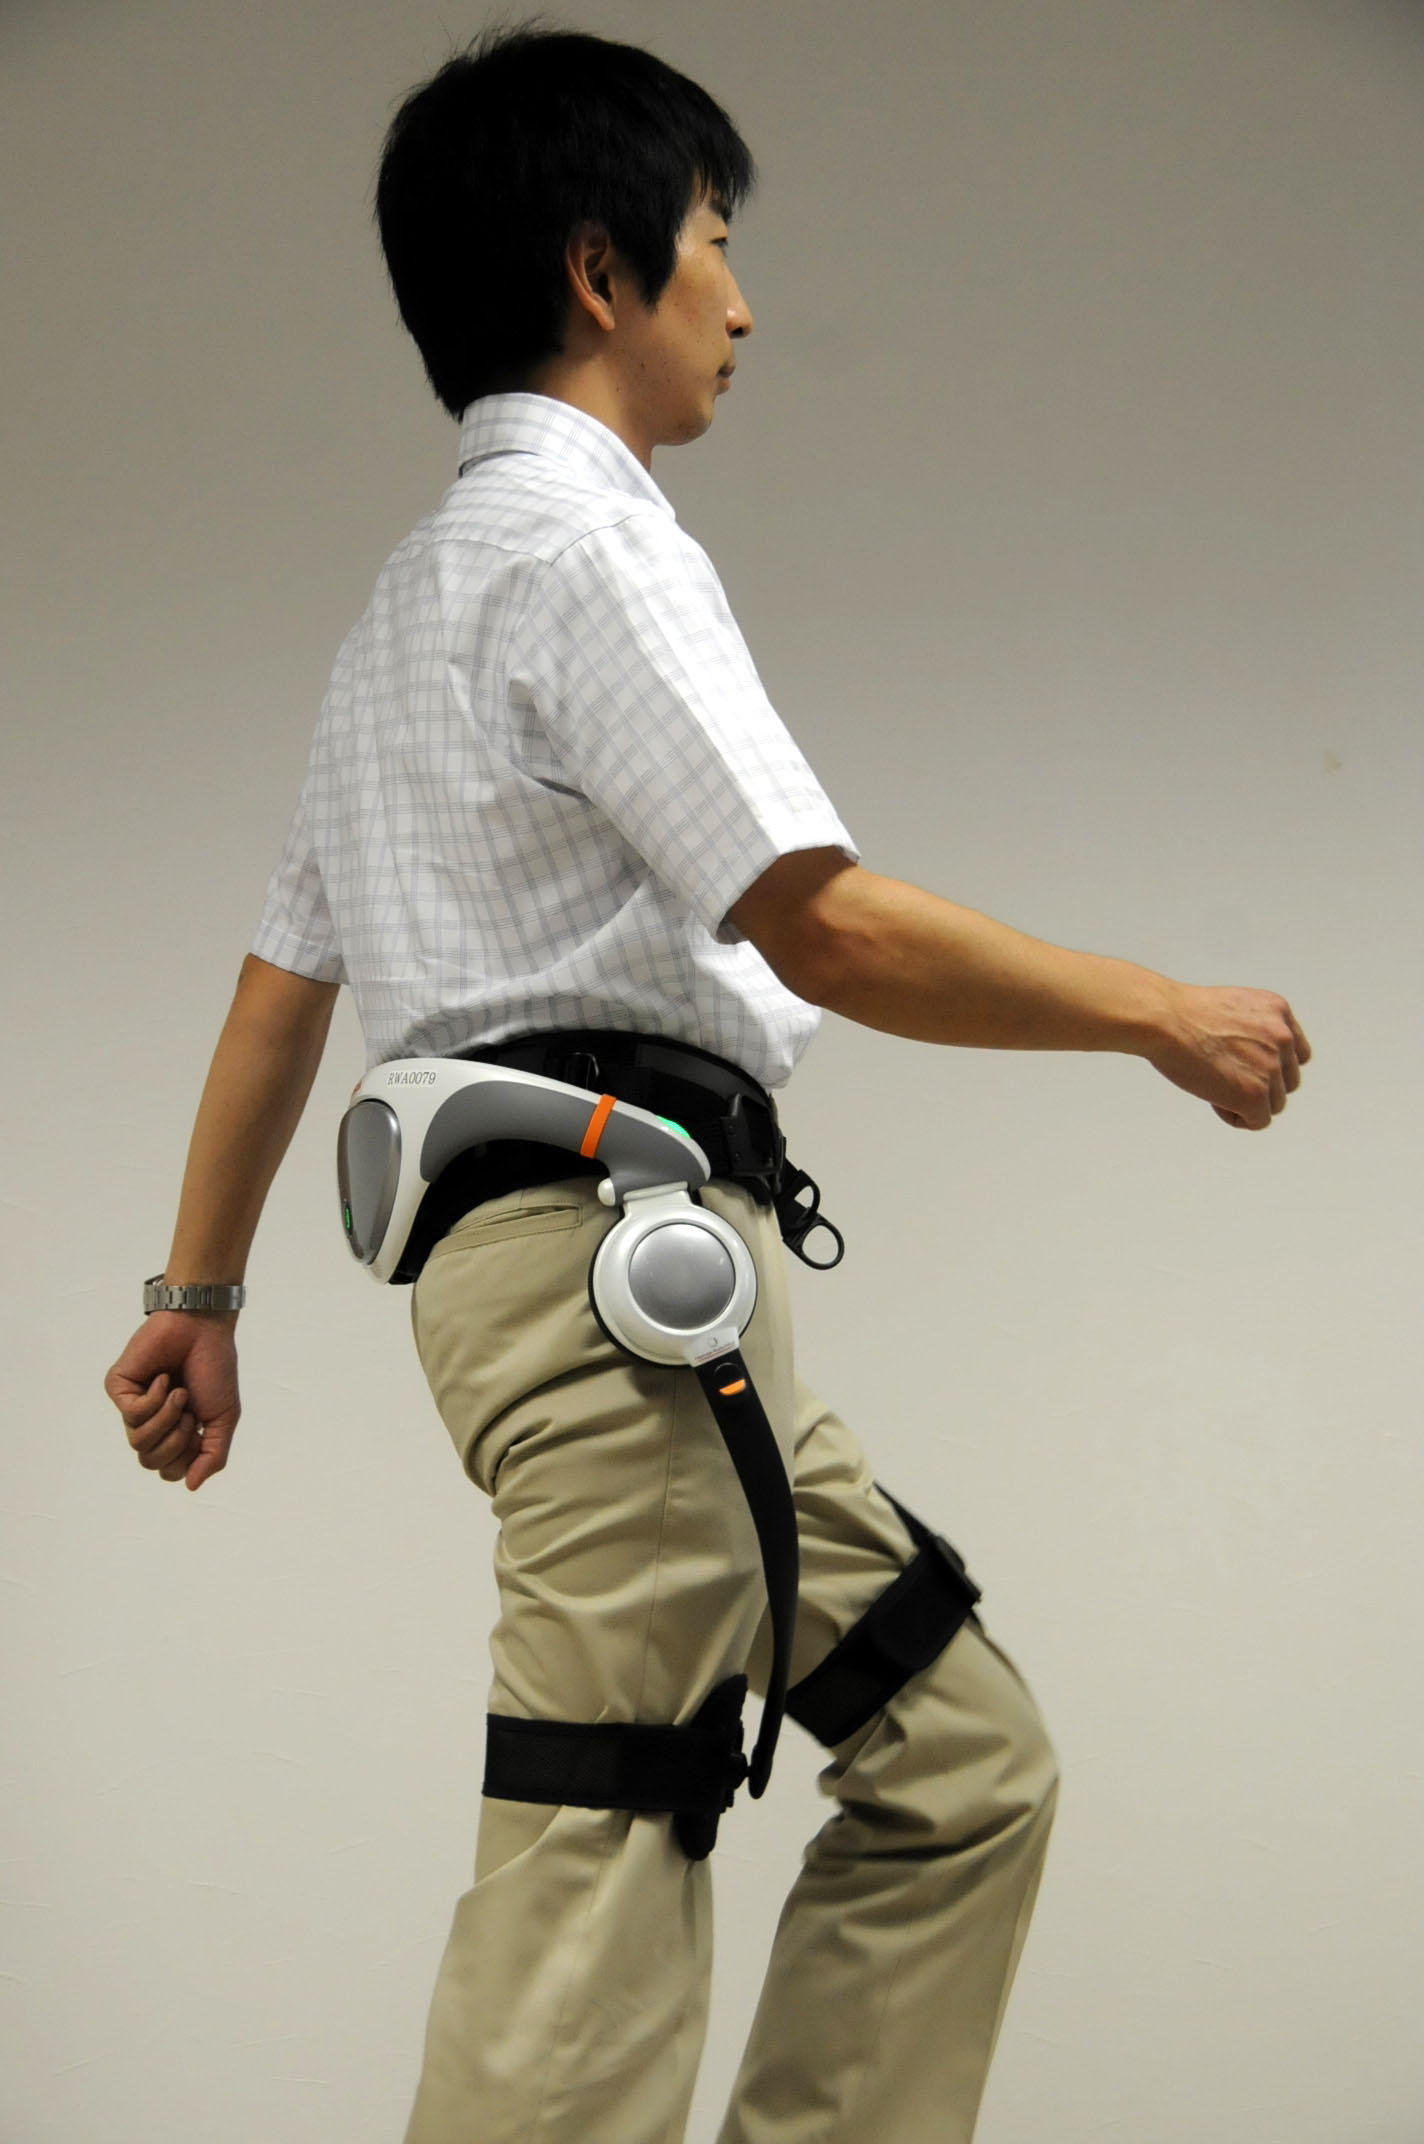 Walking the walk: The Stride Management Assist is demonstrated at Honda Motor Co. headquarters in Tokyo last month. | SATOKO KAWASAKI